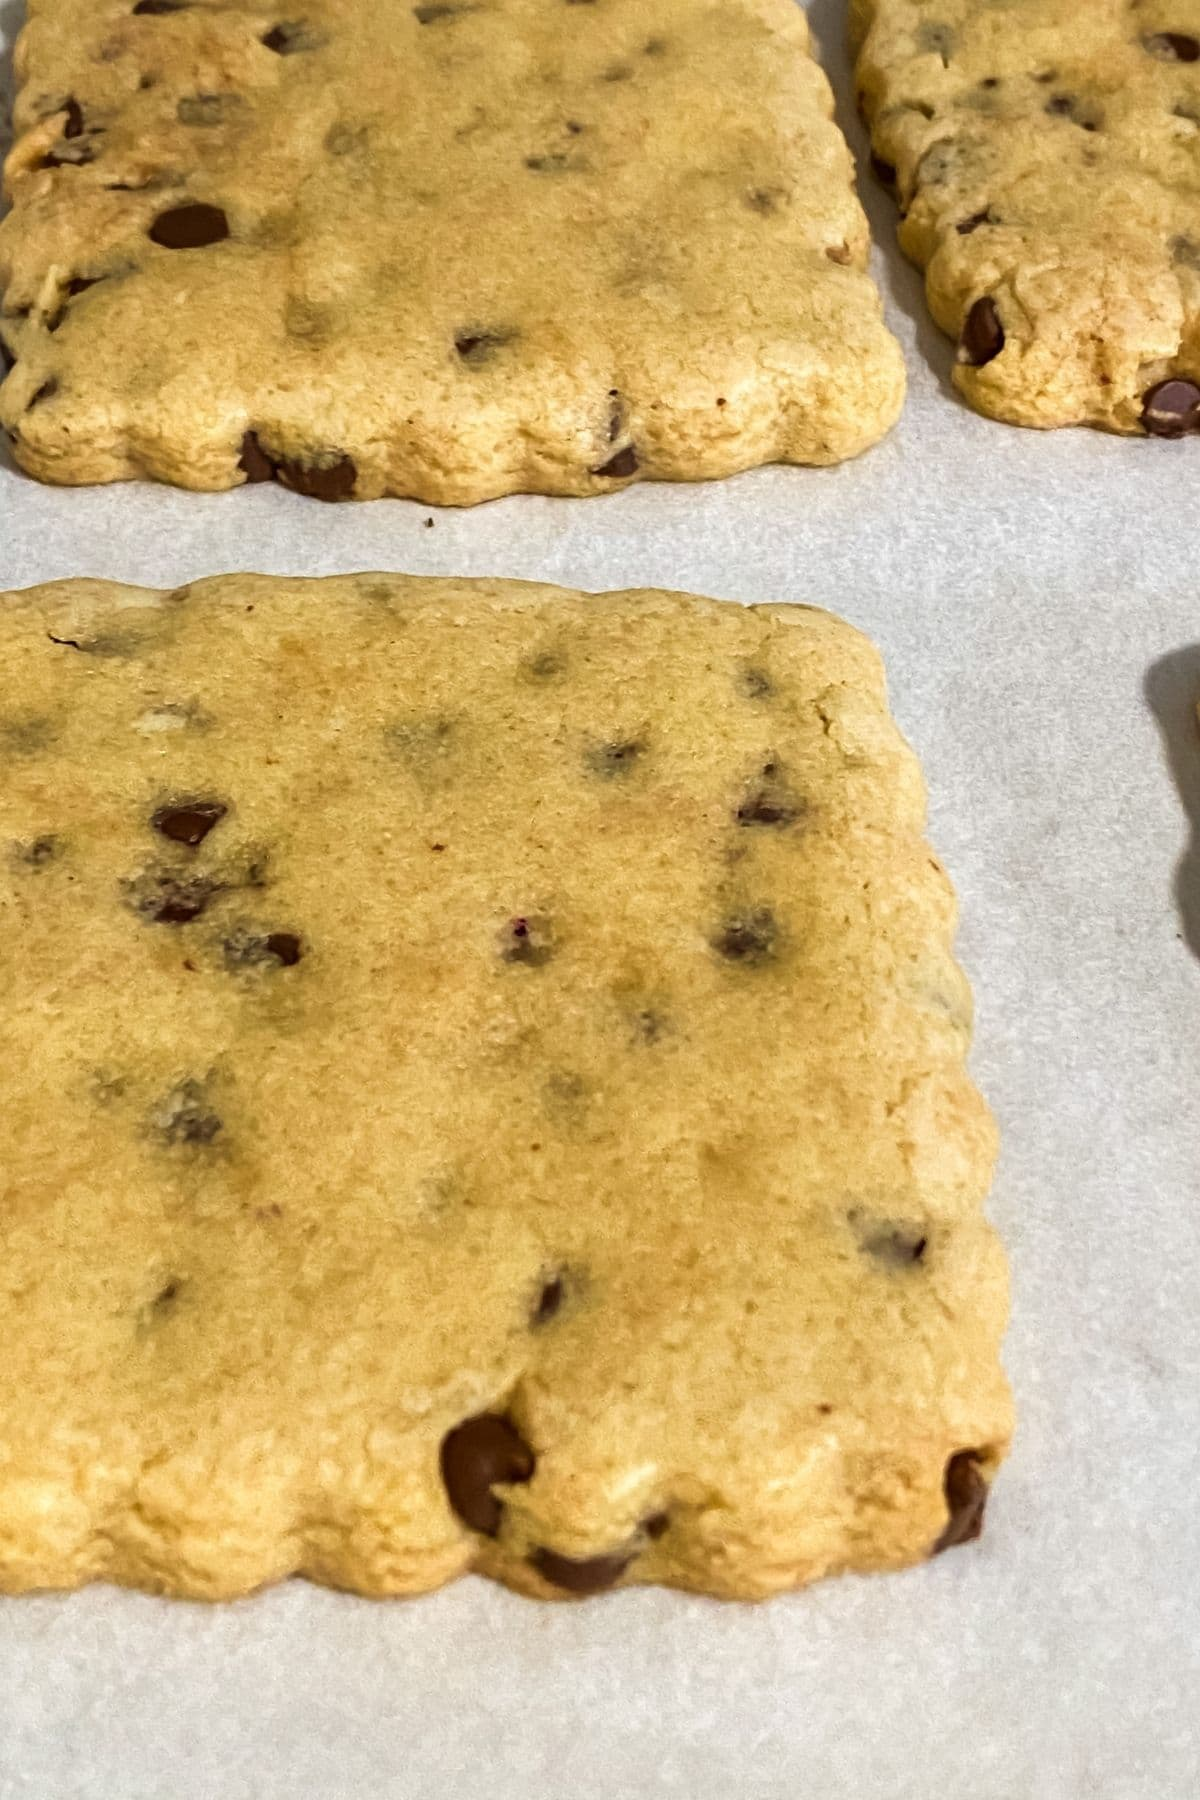 Baked chocolate chip cookies on baking sheet